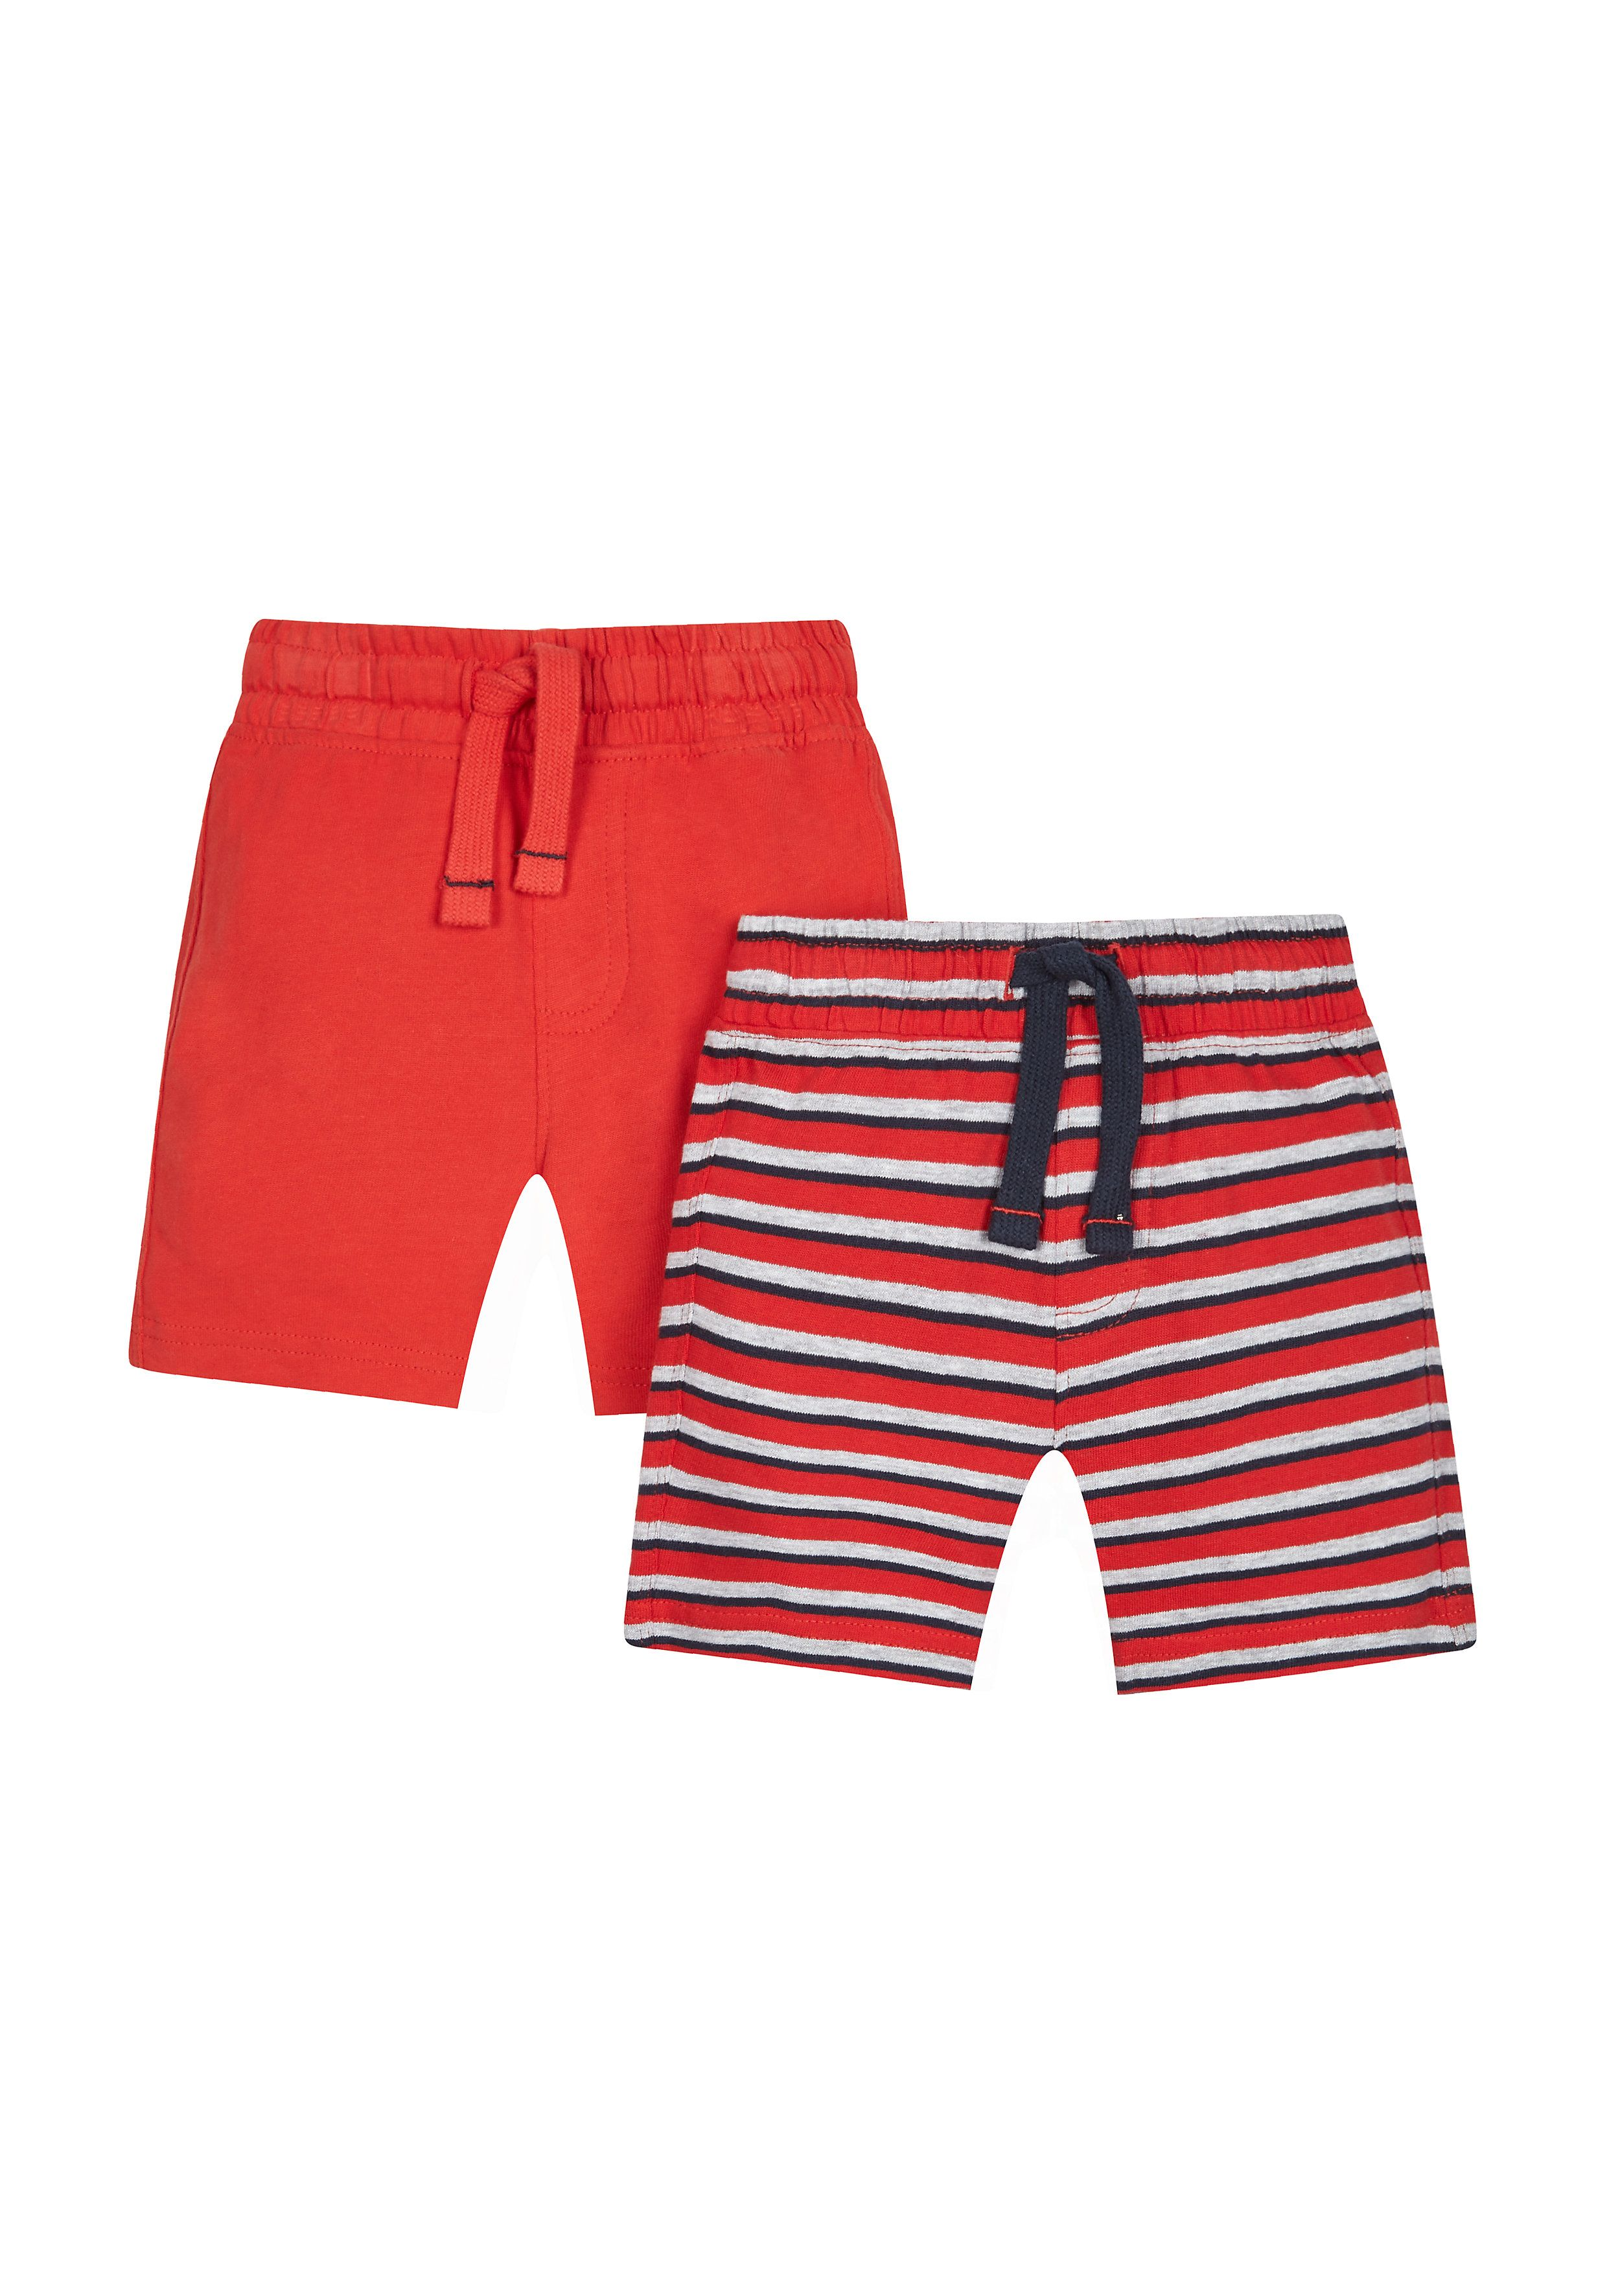 Mothercare | Red And Striped Shorts - 2 Pack